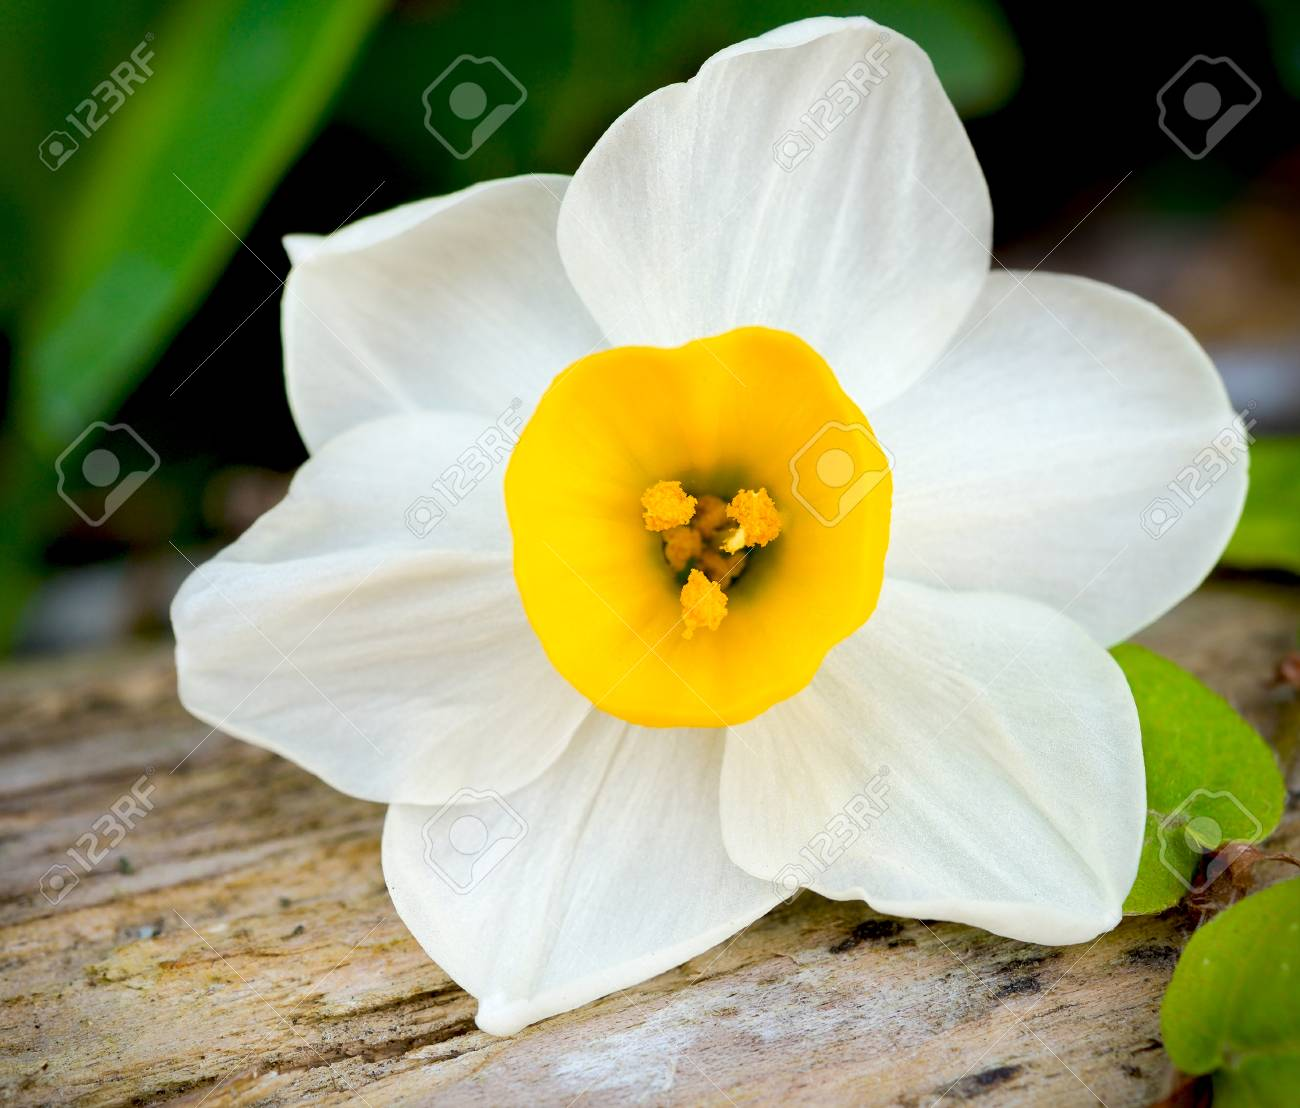 White daffodil flower stock photo picture and royalty free image stock photo white daffodil flower mightylinksfo